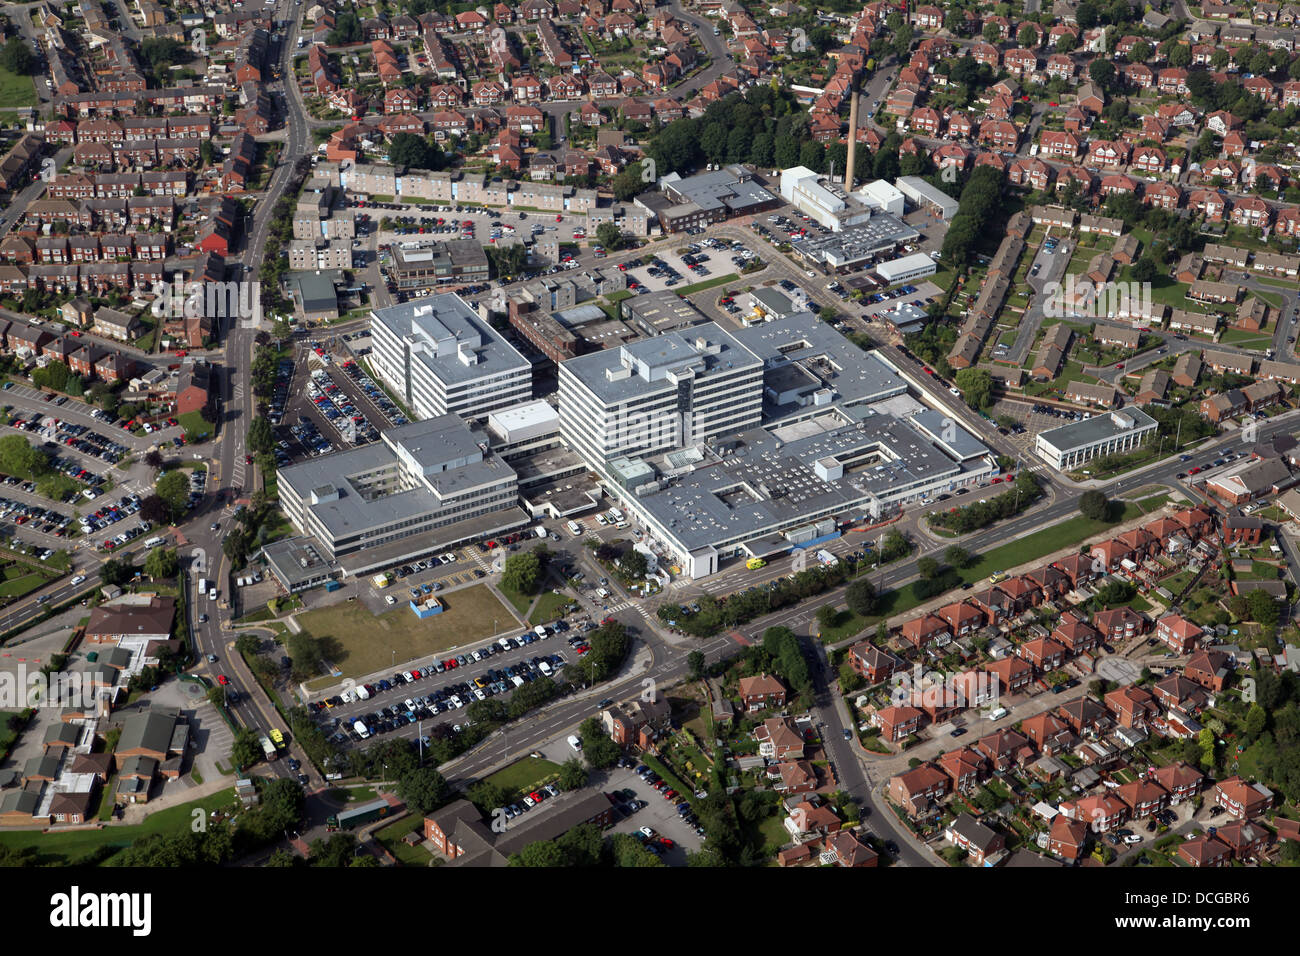 Vista aérea de Barnsley Hospital NHS Foundation Trust Imagen De Stock